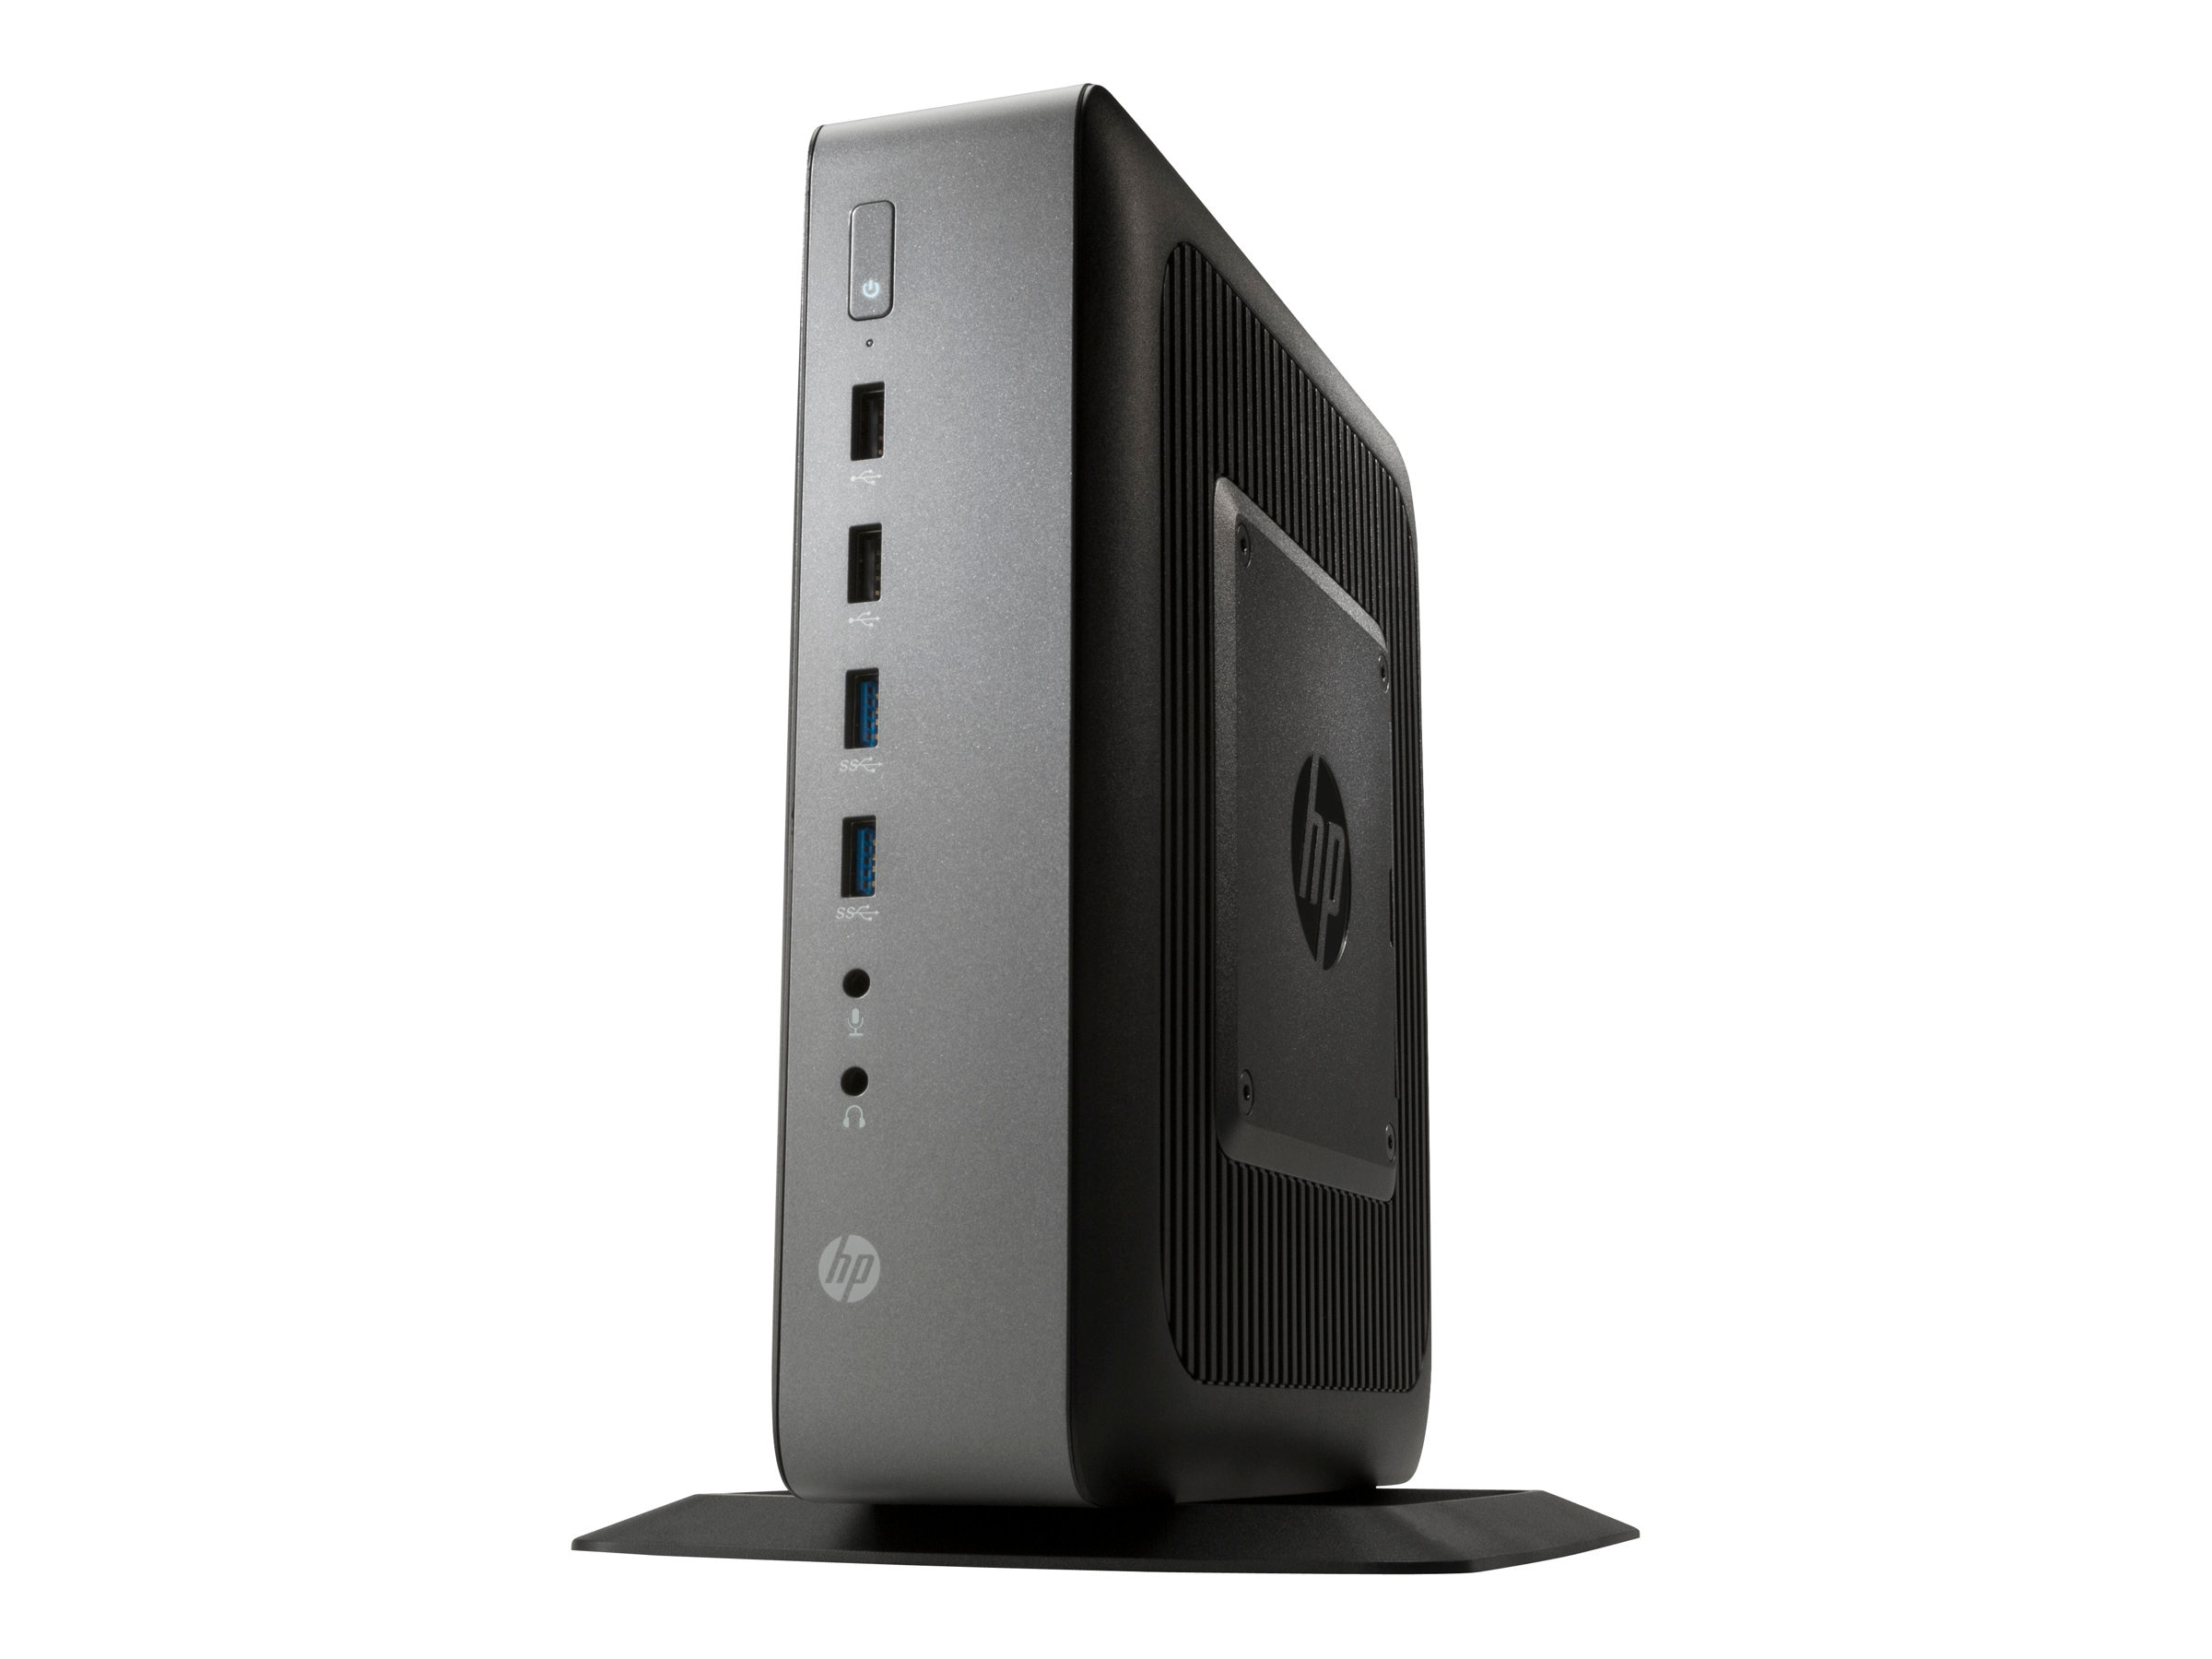 HP t620 PLUS Flexible Thin Client QC GX-420CA 2.0GHz 4GB RAM 16GB Flash HD8400E GbE WE864